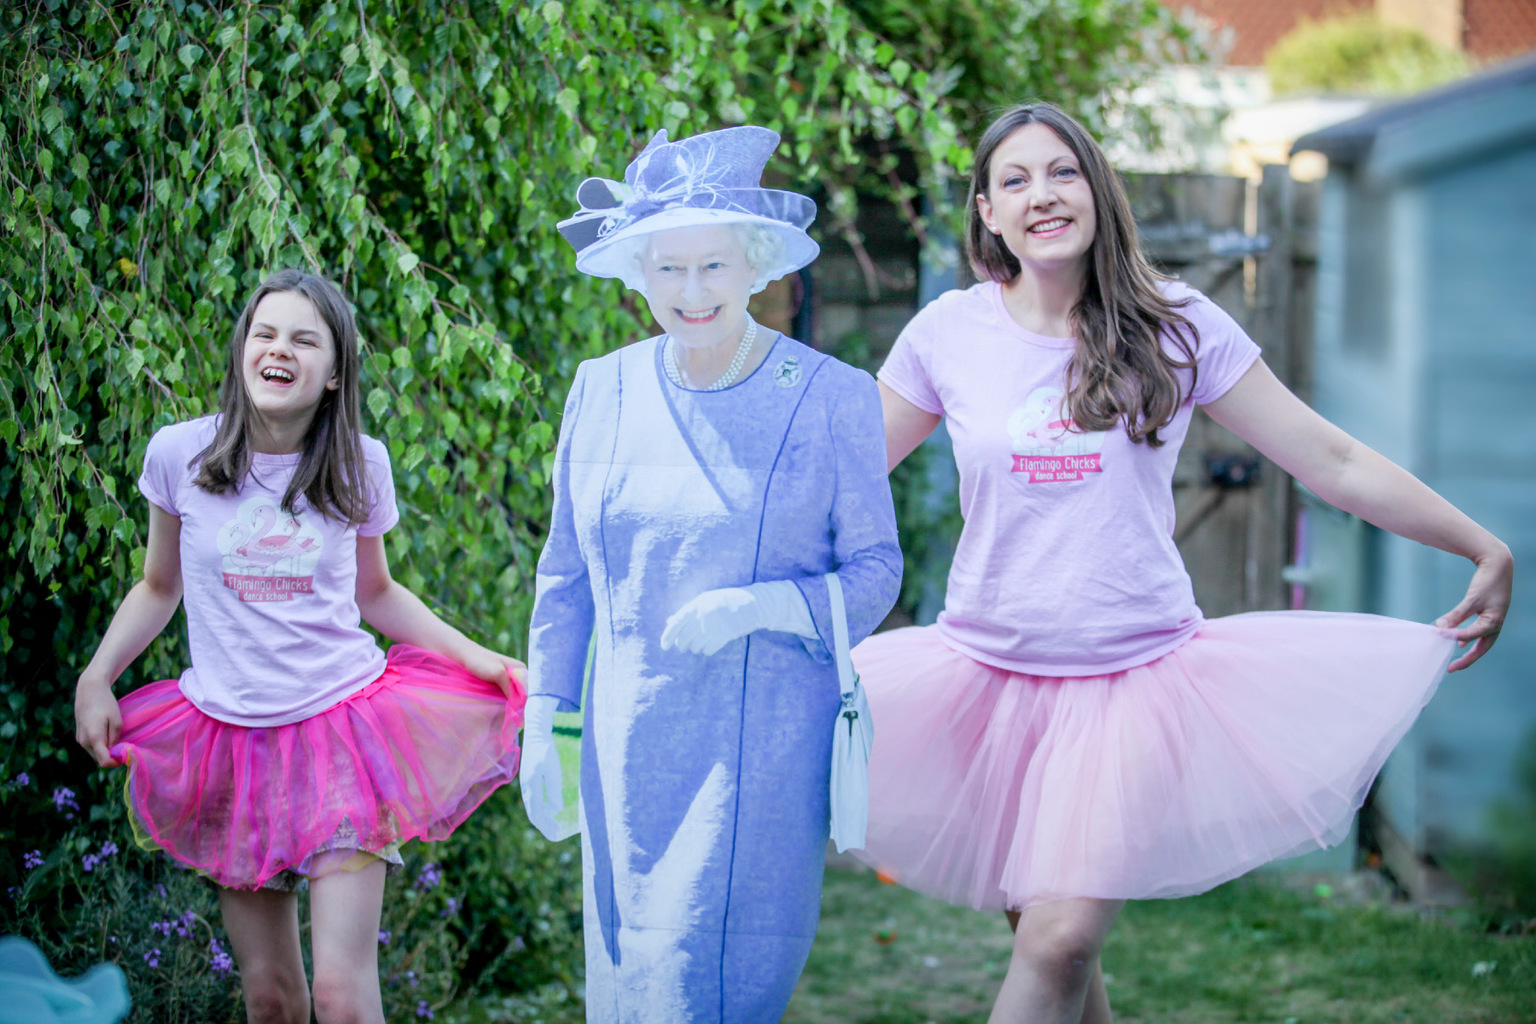 Flamingo Chicks CEO Katie and her family curtsey with a cut out of the Queen celebrating our Queen's Award win